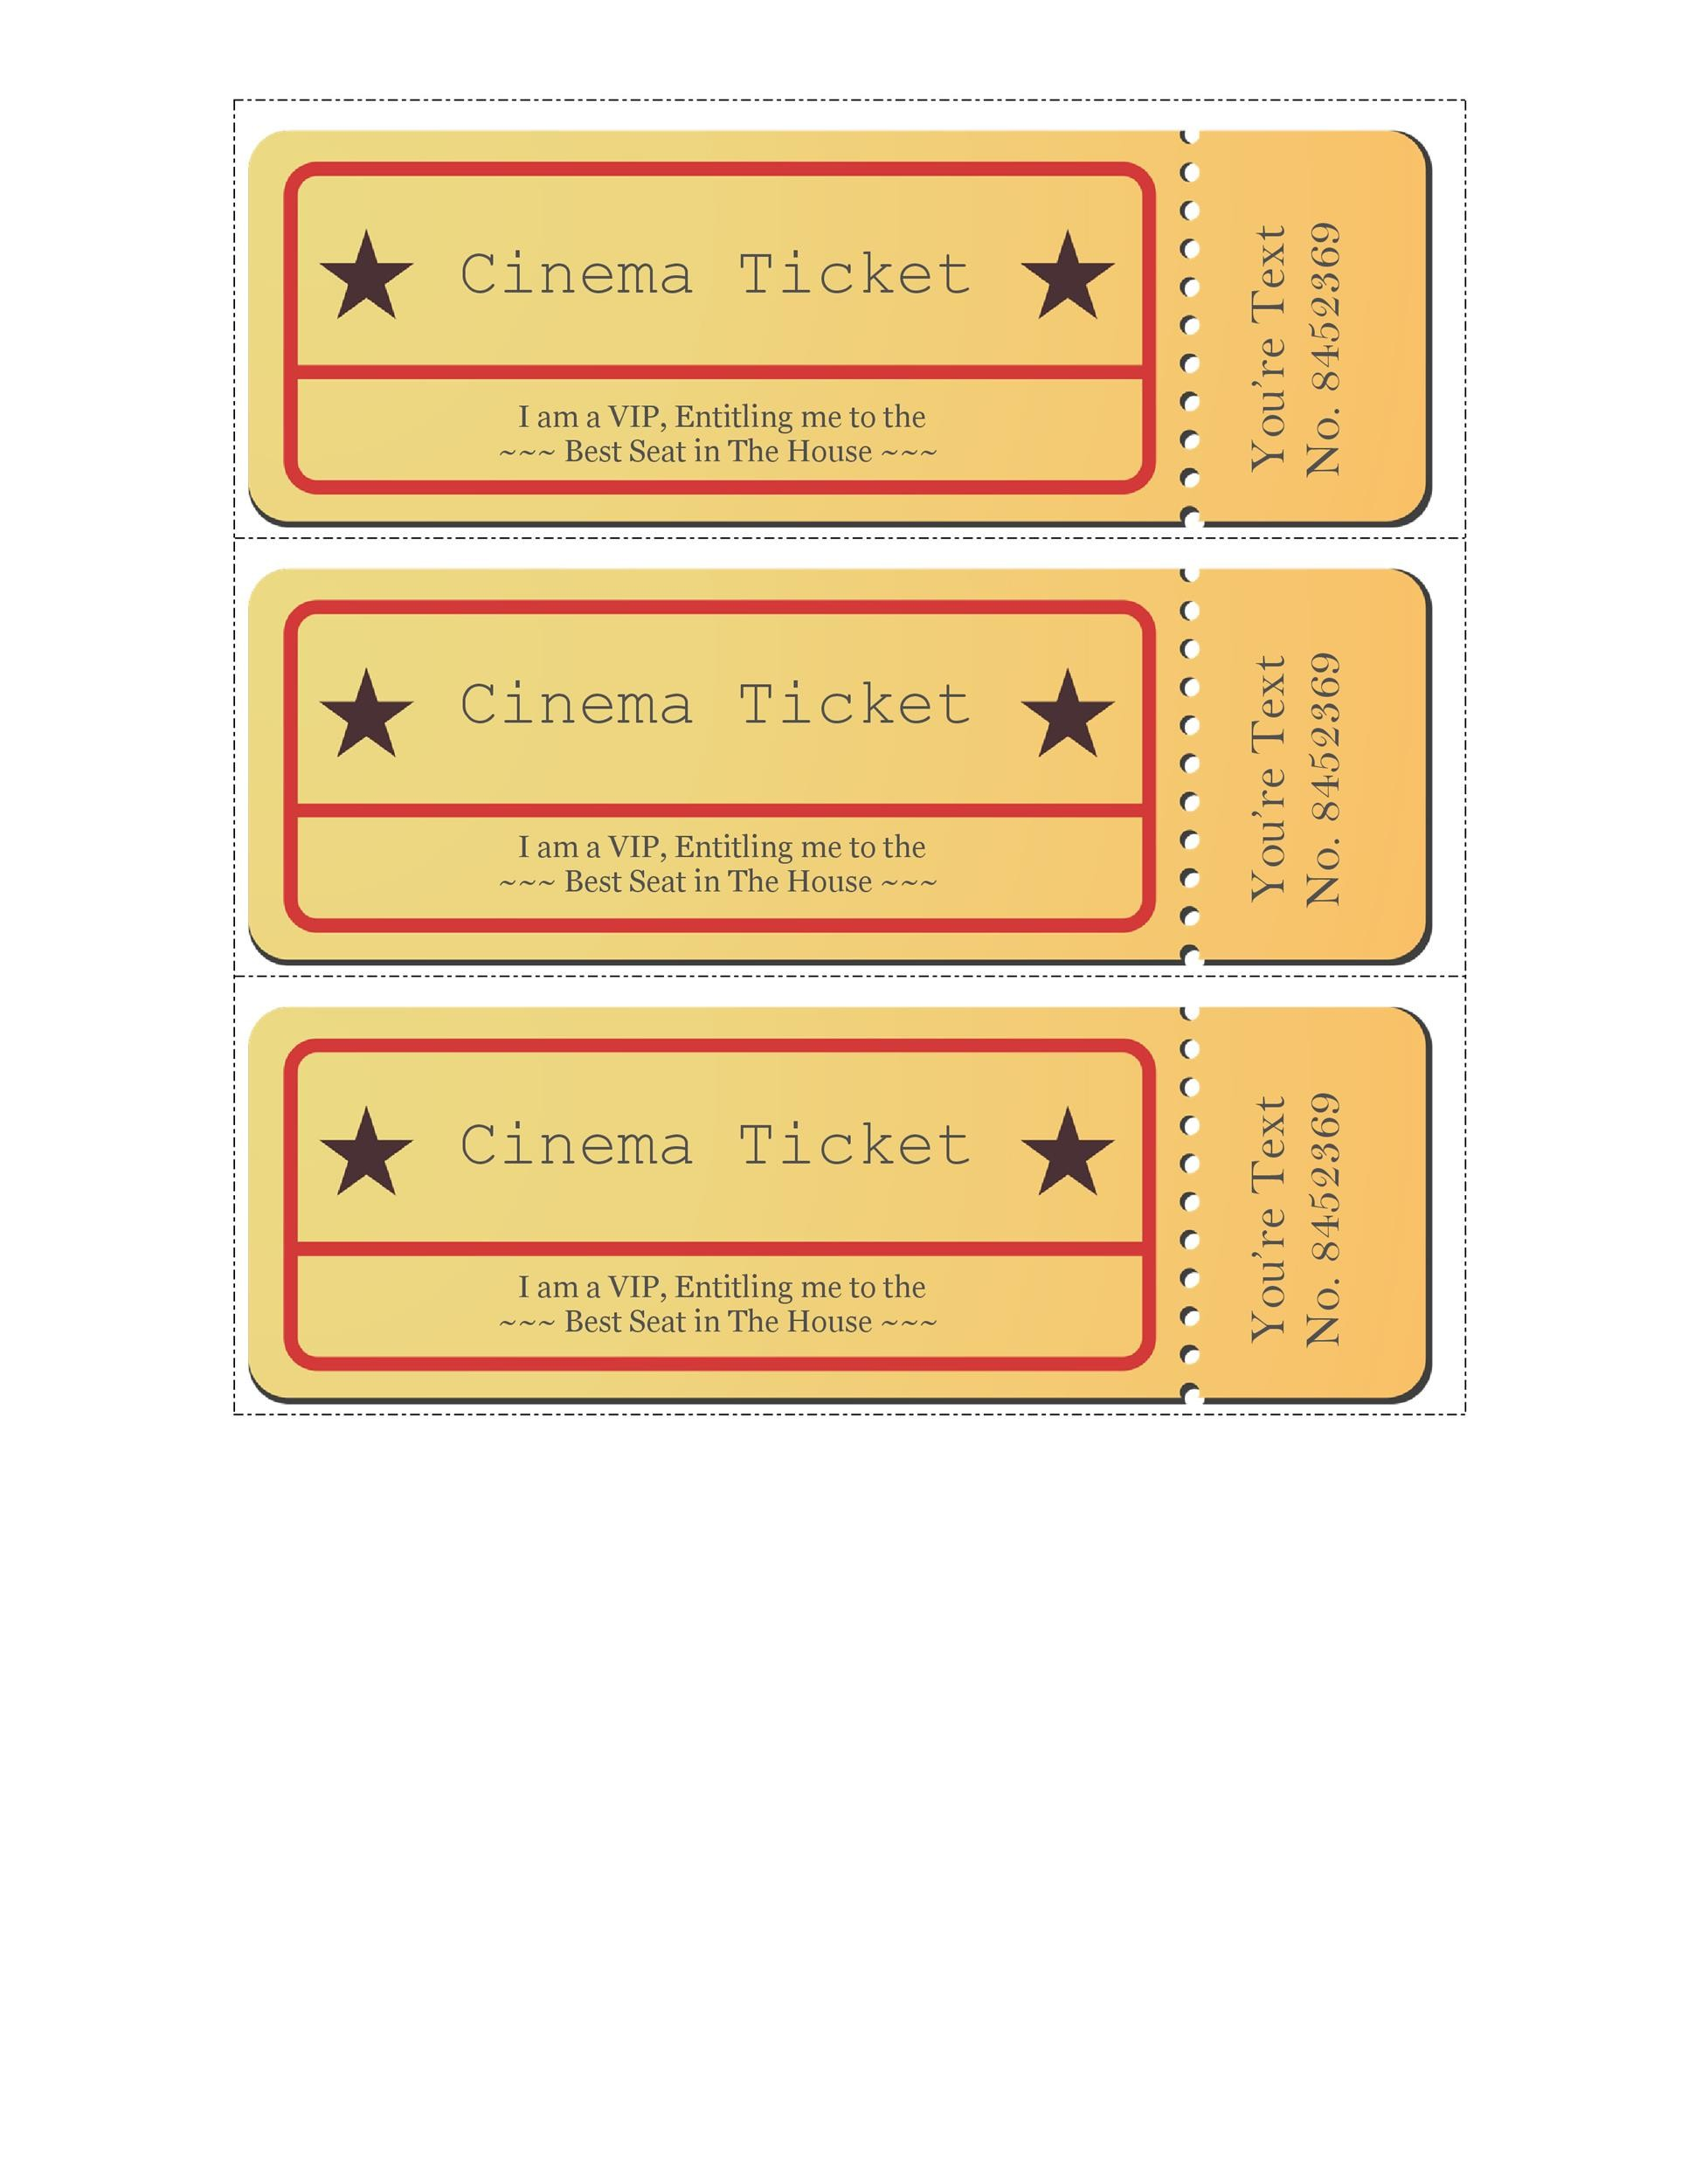 free admission ticket template - Goalgoodwinmetals - Ball Ticket Template